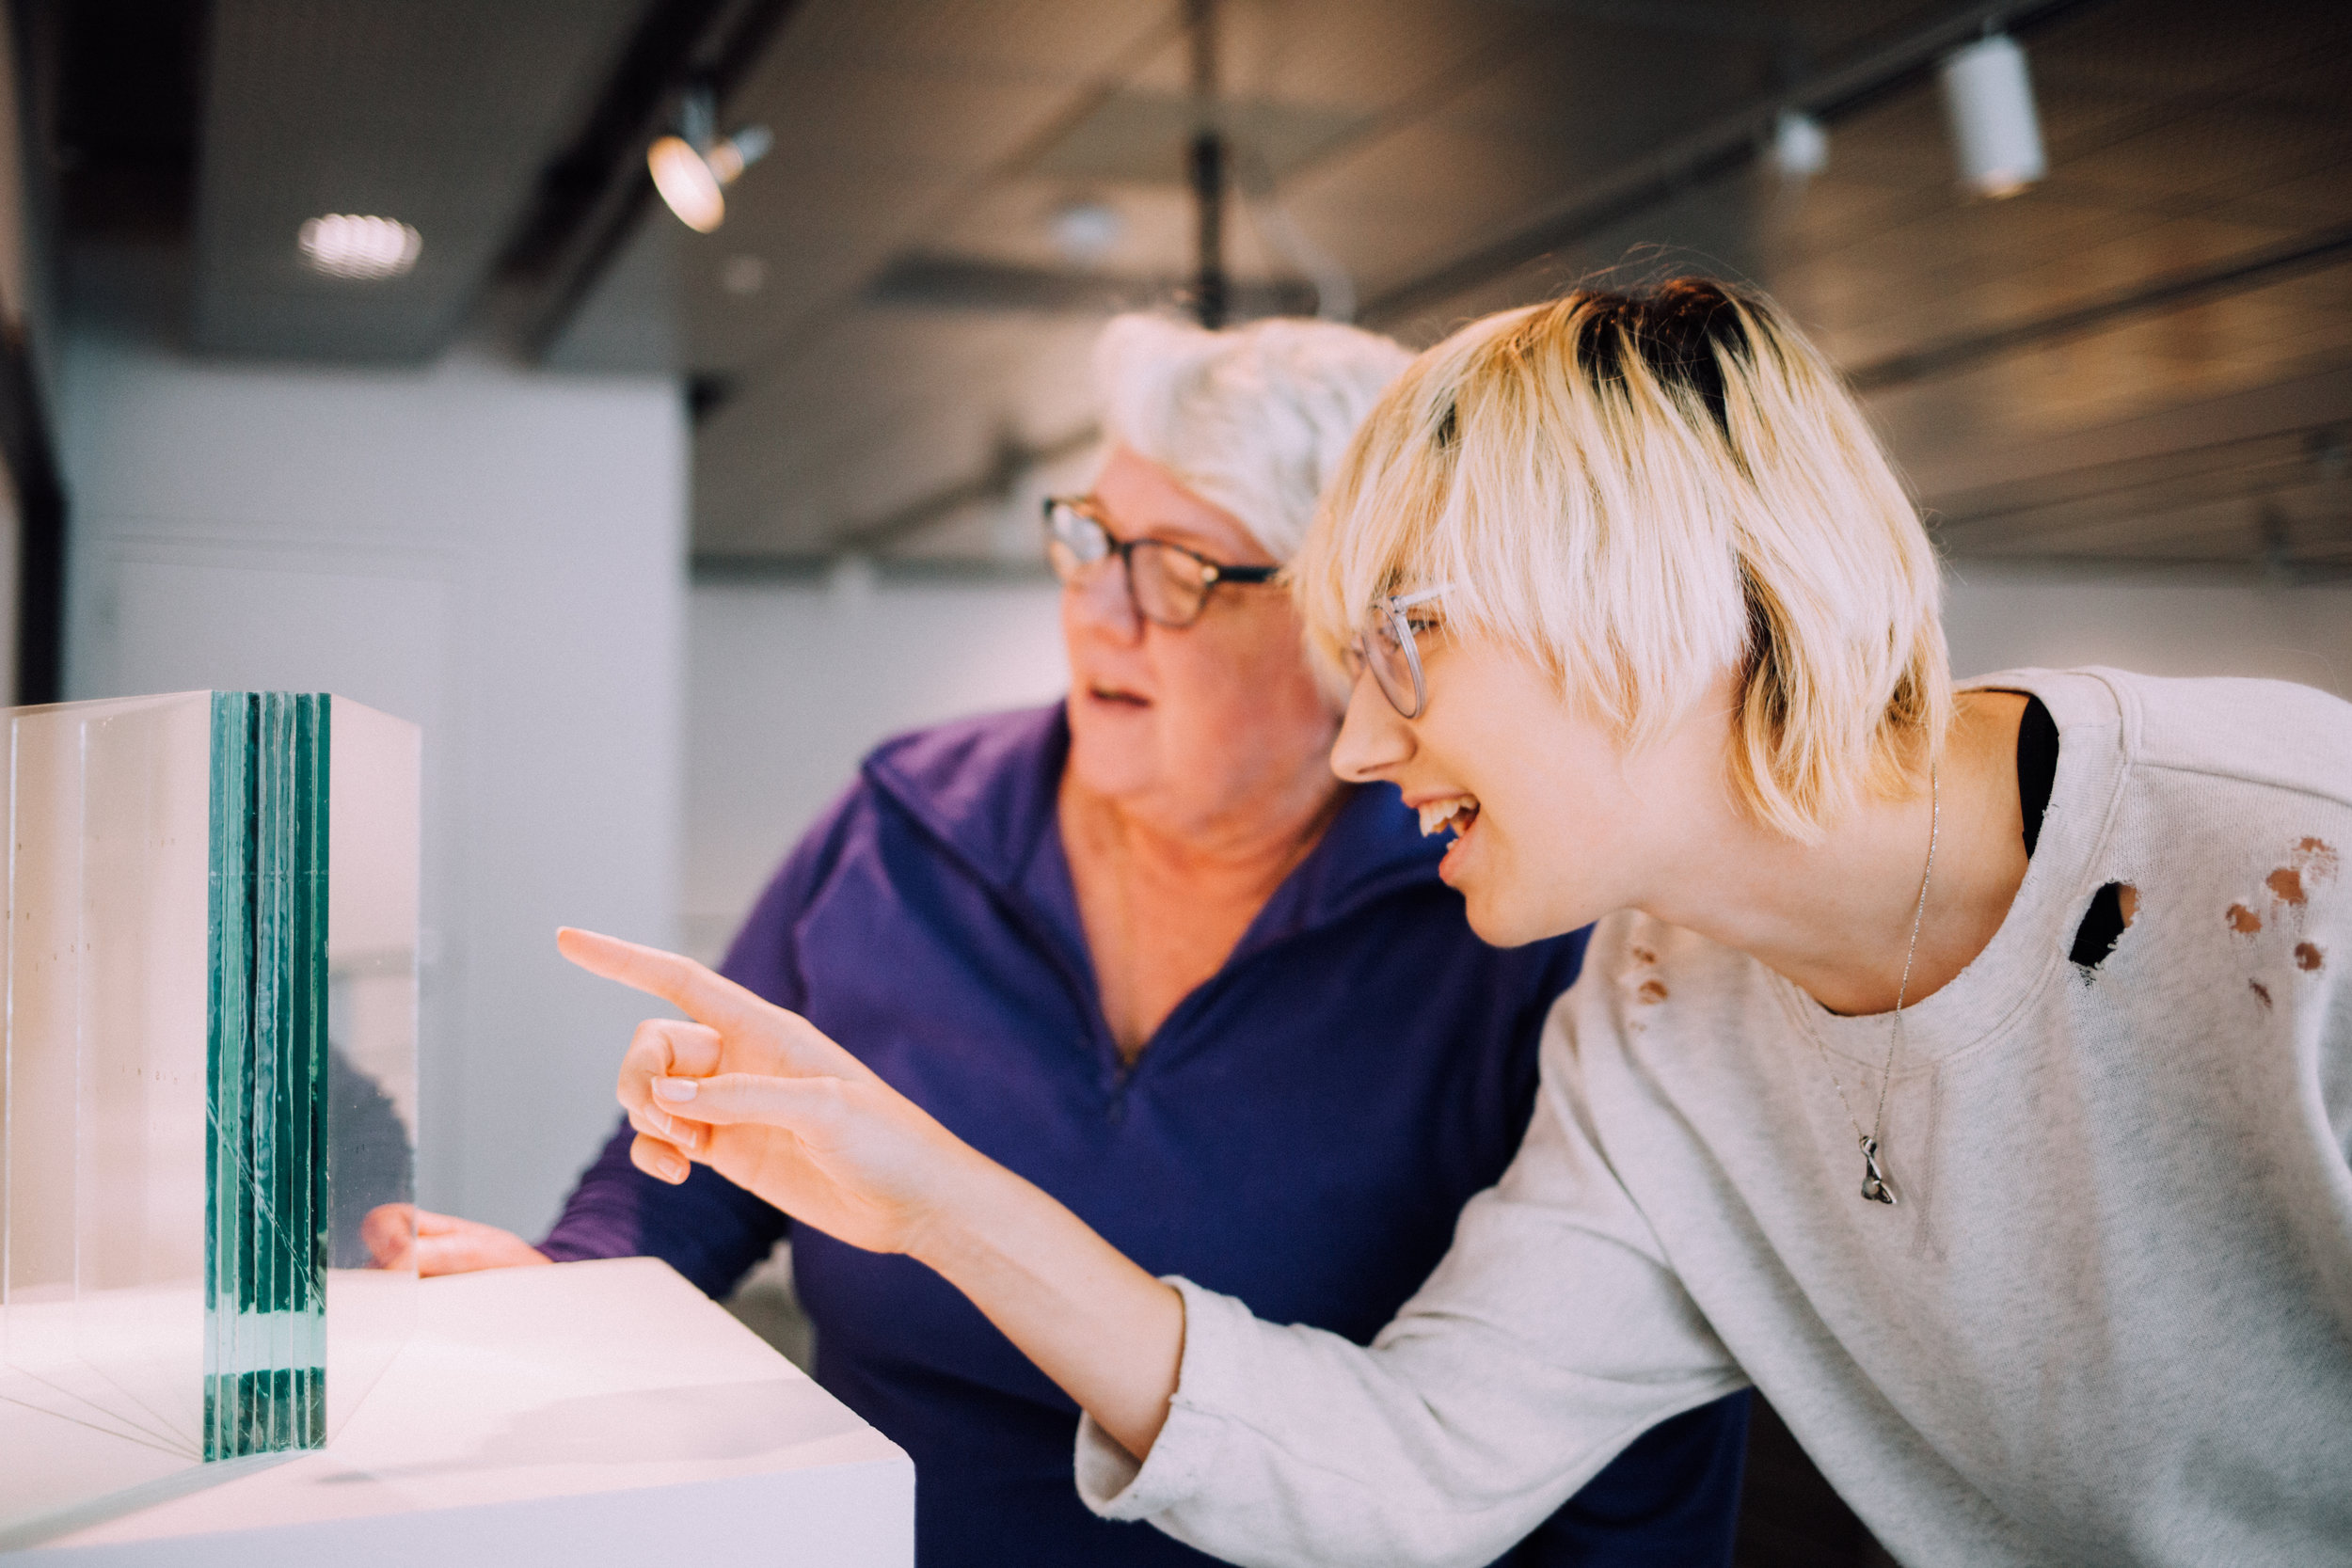 Two gallery guests looking at artwork together.